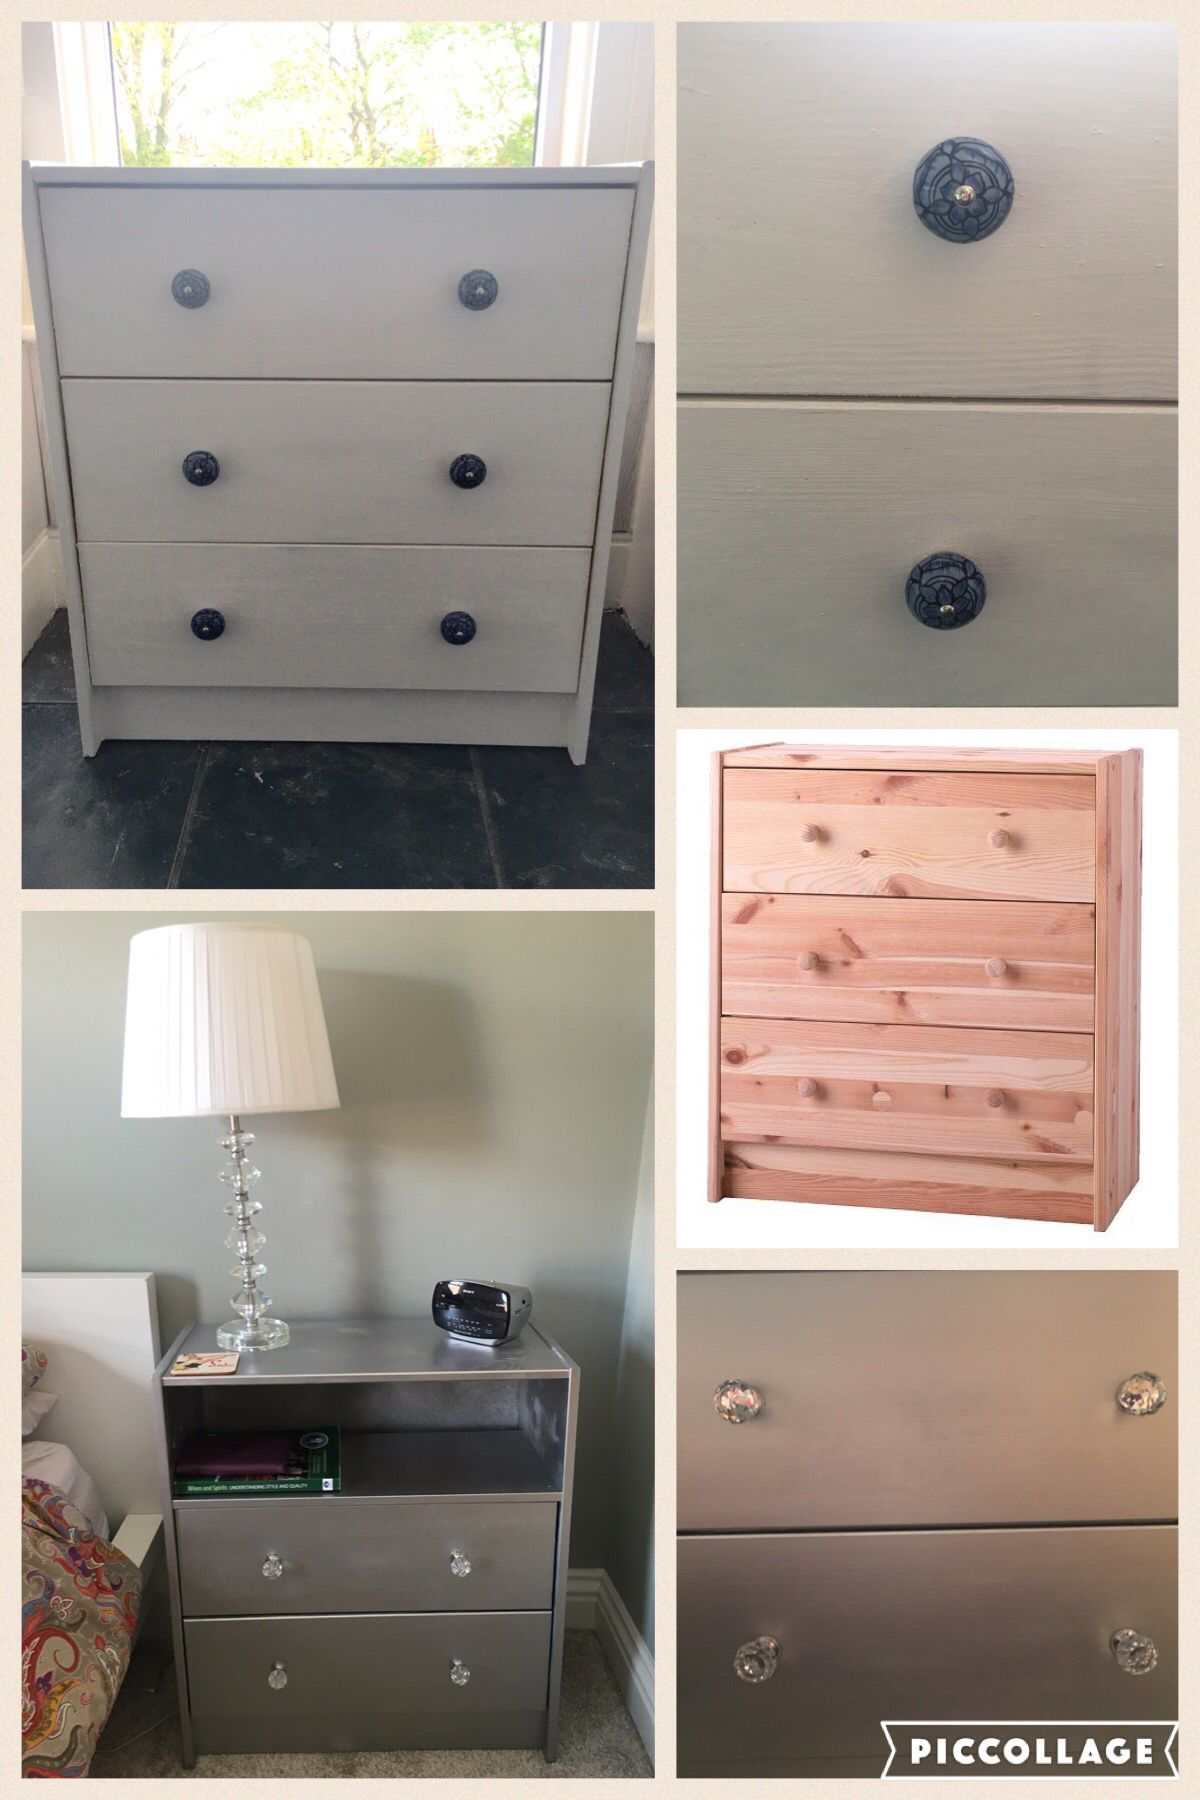 IKEA rast chest of drawers hack 2 ways! Upcycled using white Annie Sloan  paint with